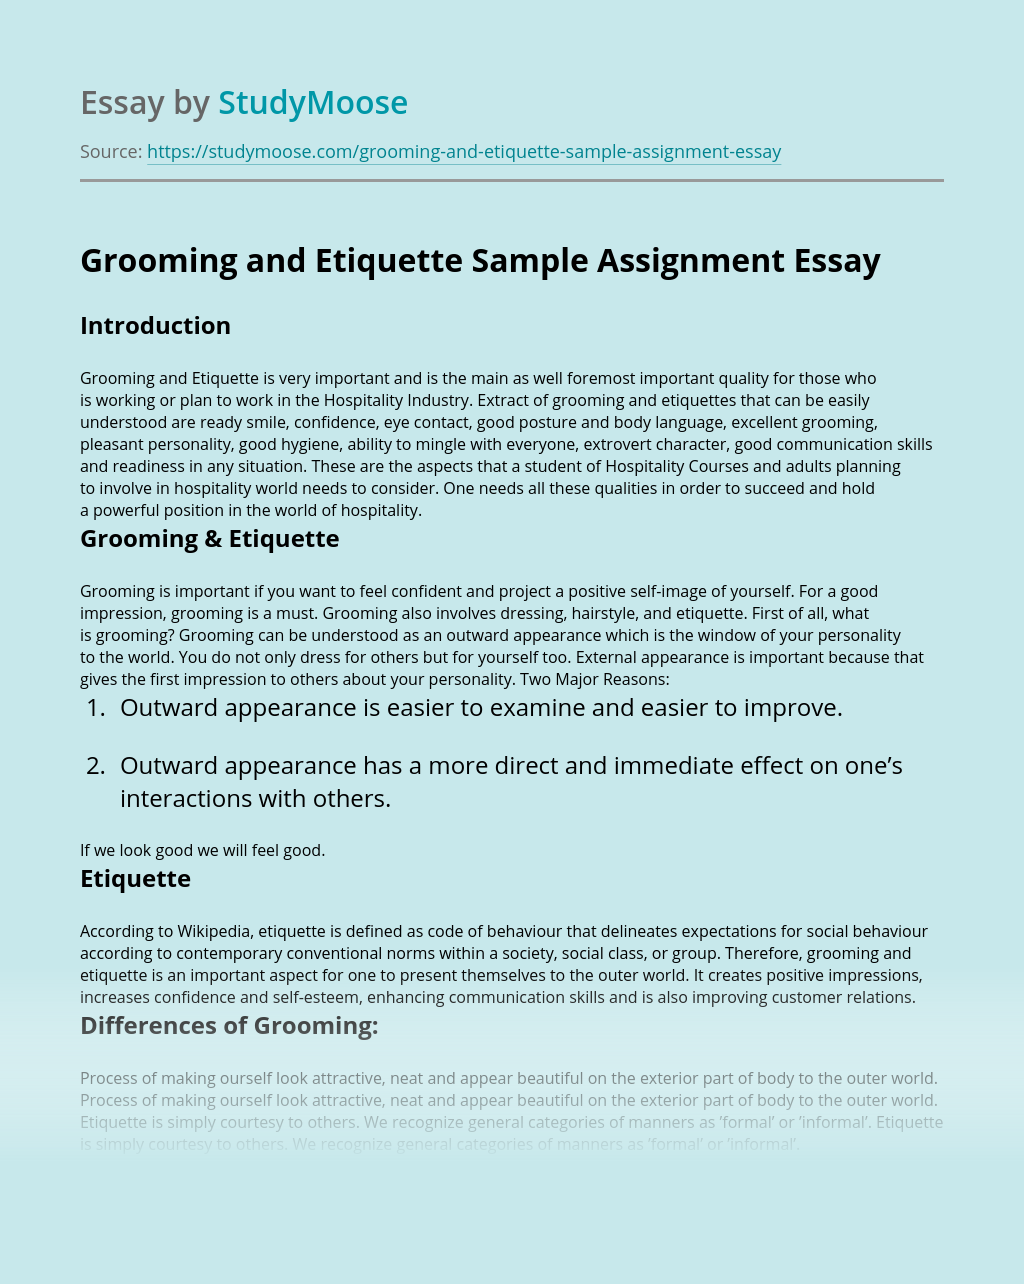 Grooming and Etiquette Sample Assignment